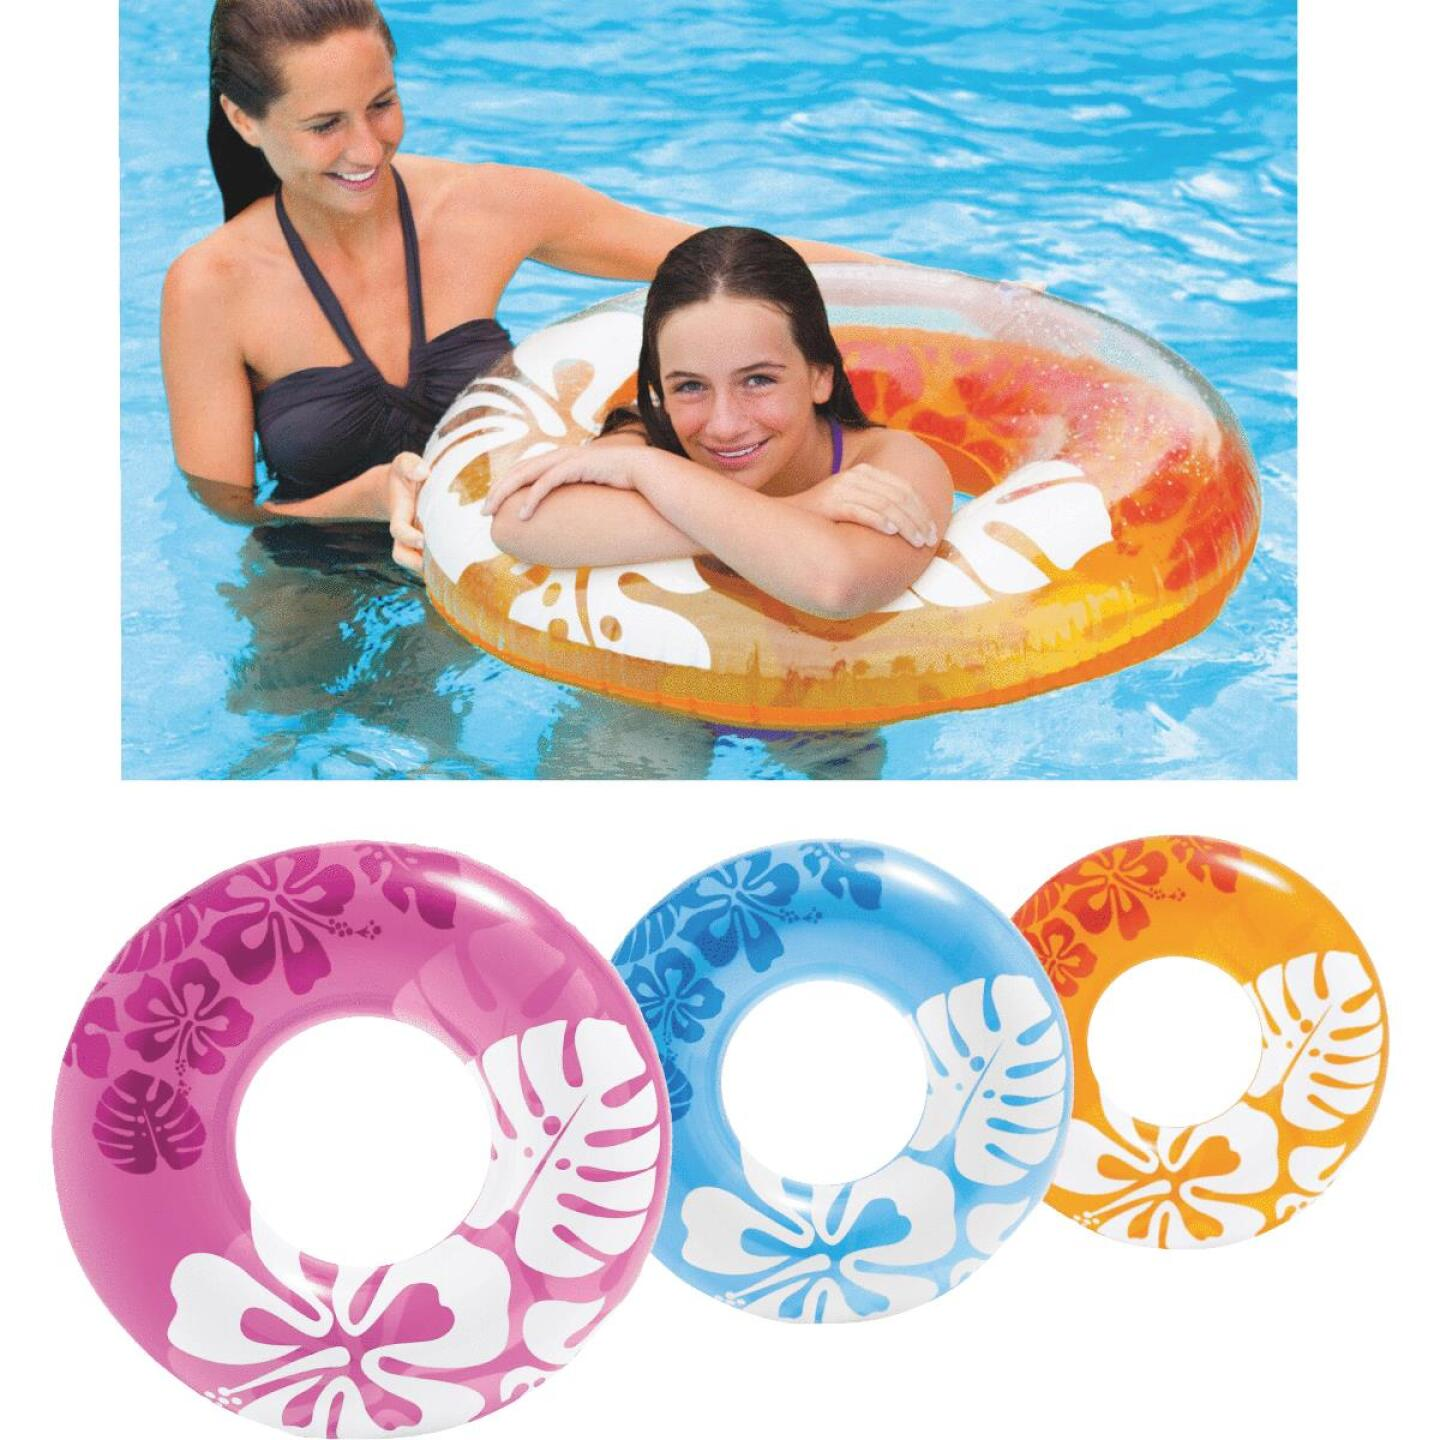 Intex 36 In. Pool Tube Float Image 1